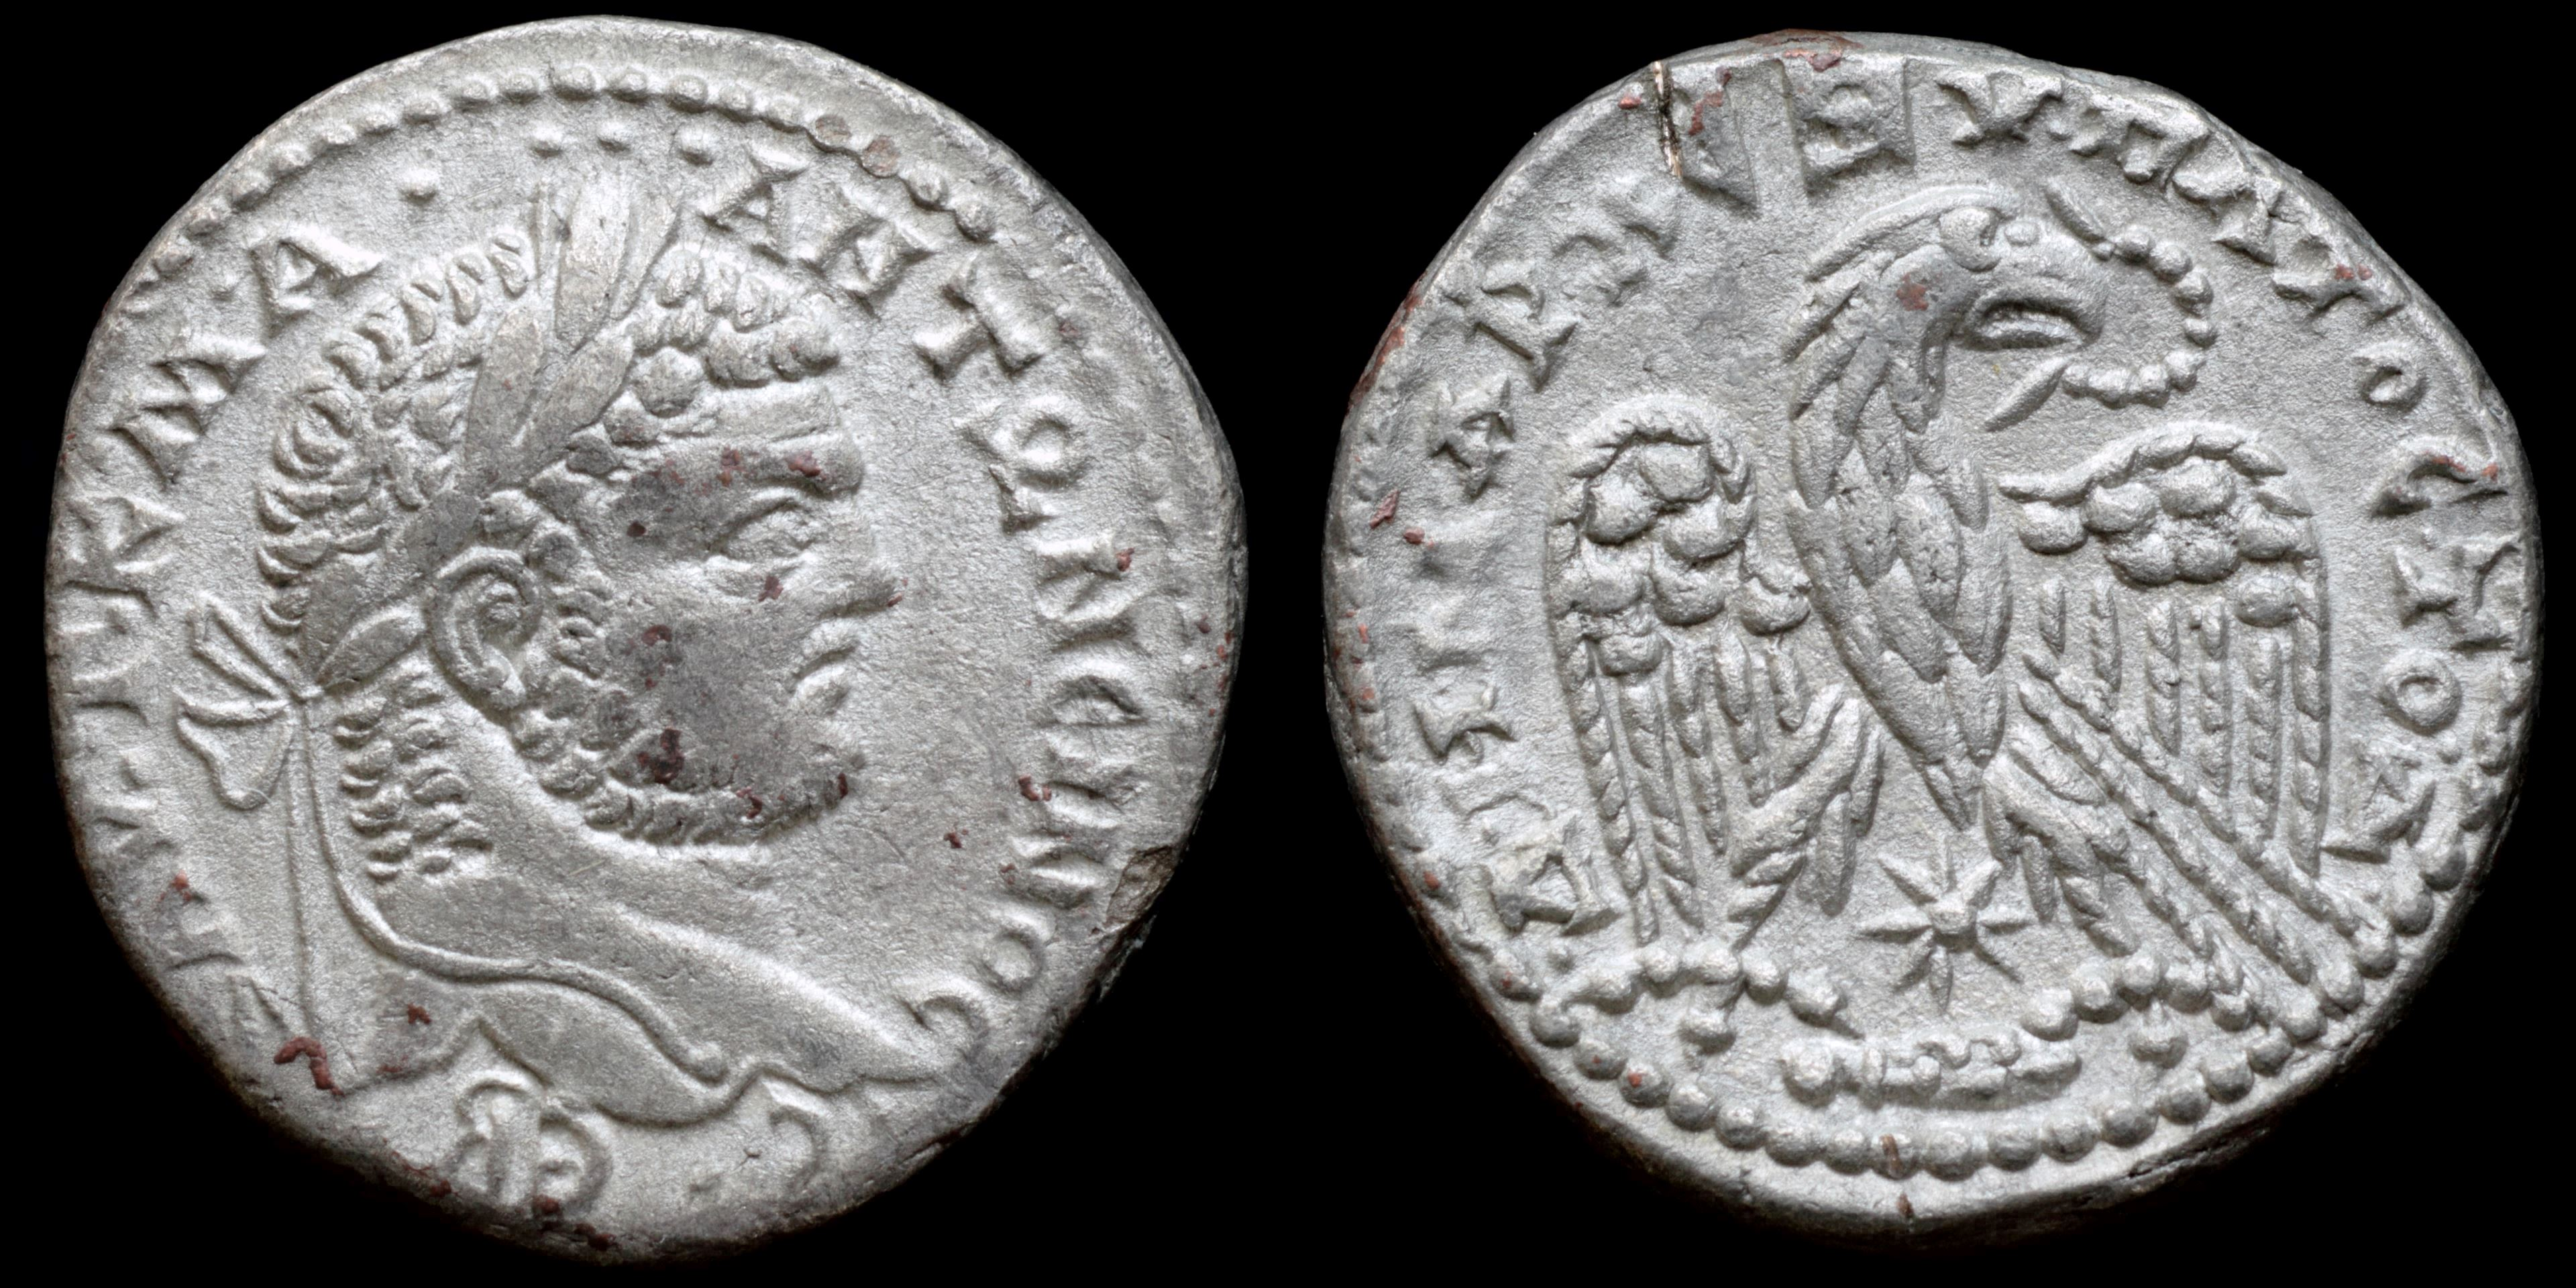 /Files/Images/Coinsite/CoinDB/Caracalla_Antioch_tetra.jpg